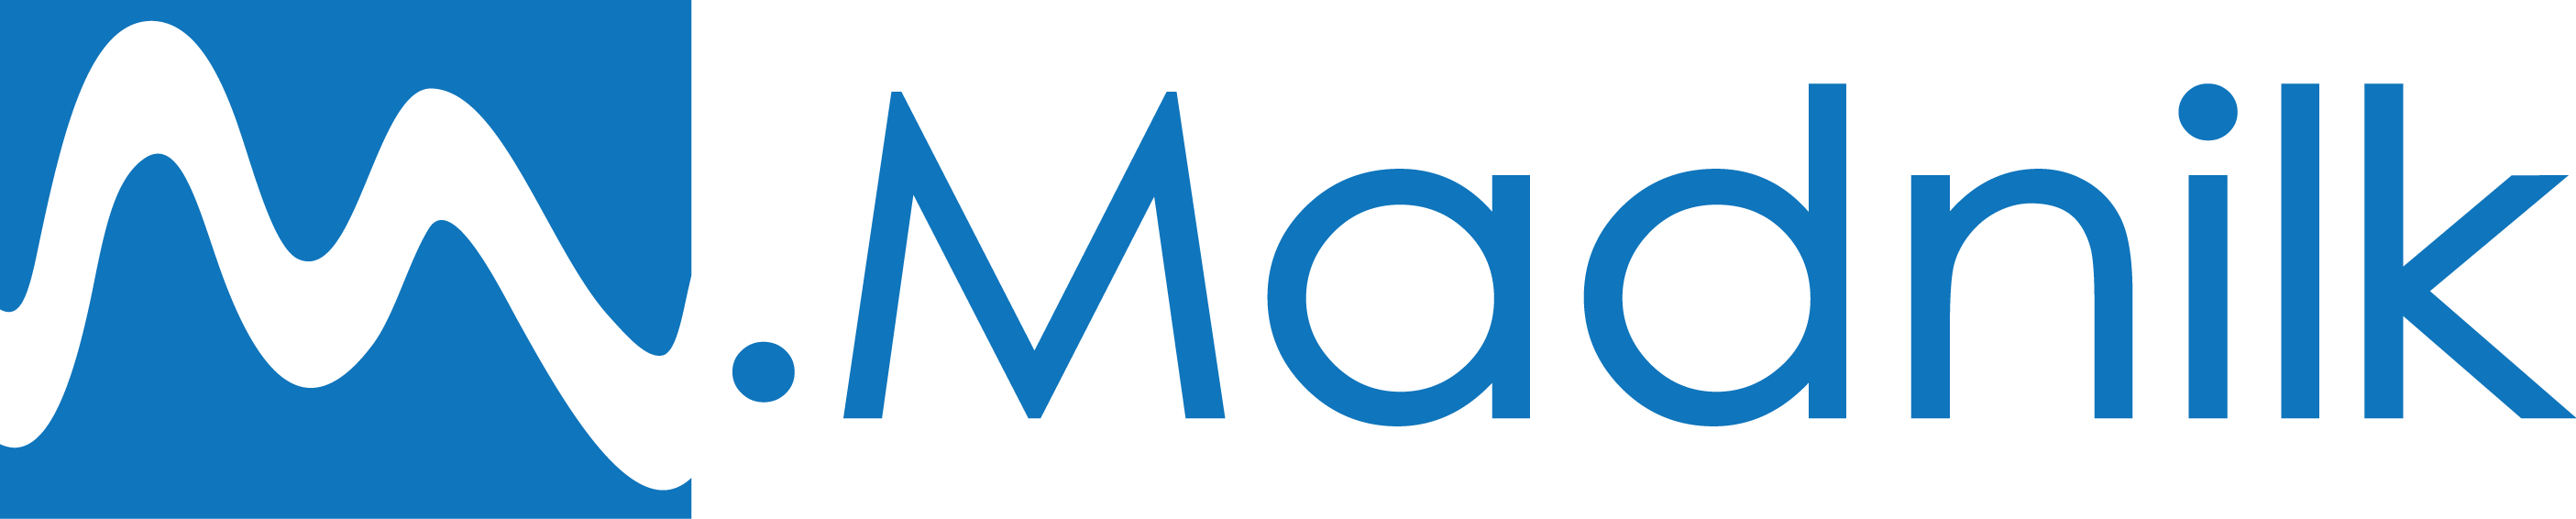 Madnilk - digital transformation related to machine learning and enterprise core system; digital entrepreneurship, development consultation, and training. With the aim to scale their business.